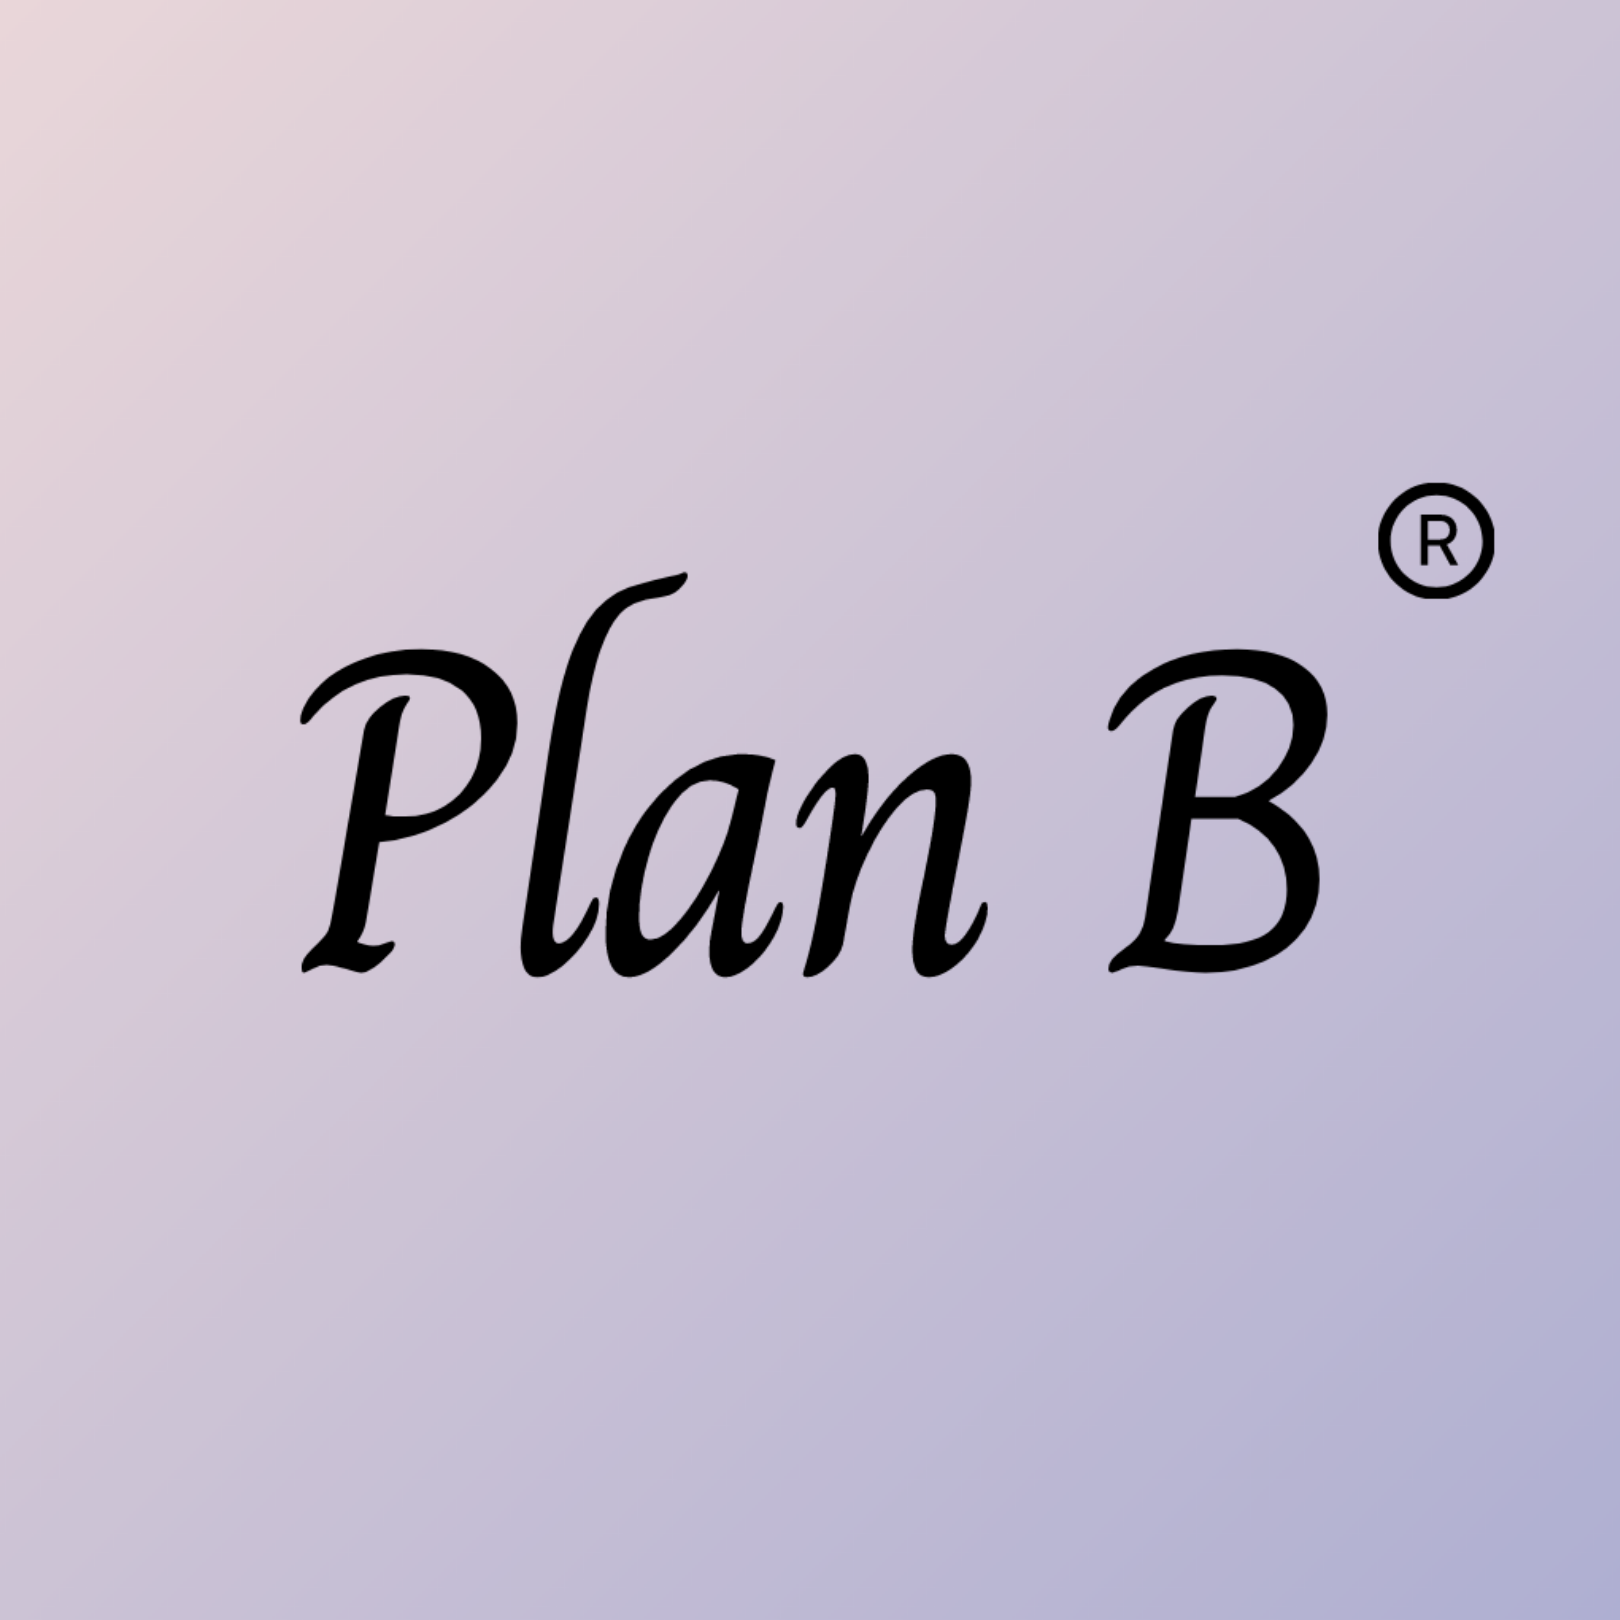 Order Plan B emergency contraception at hellowisp.com